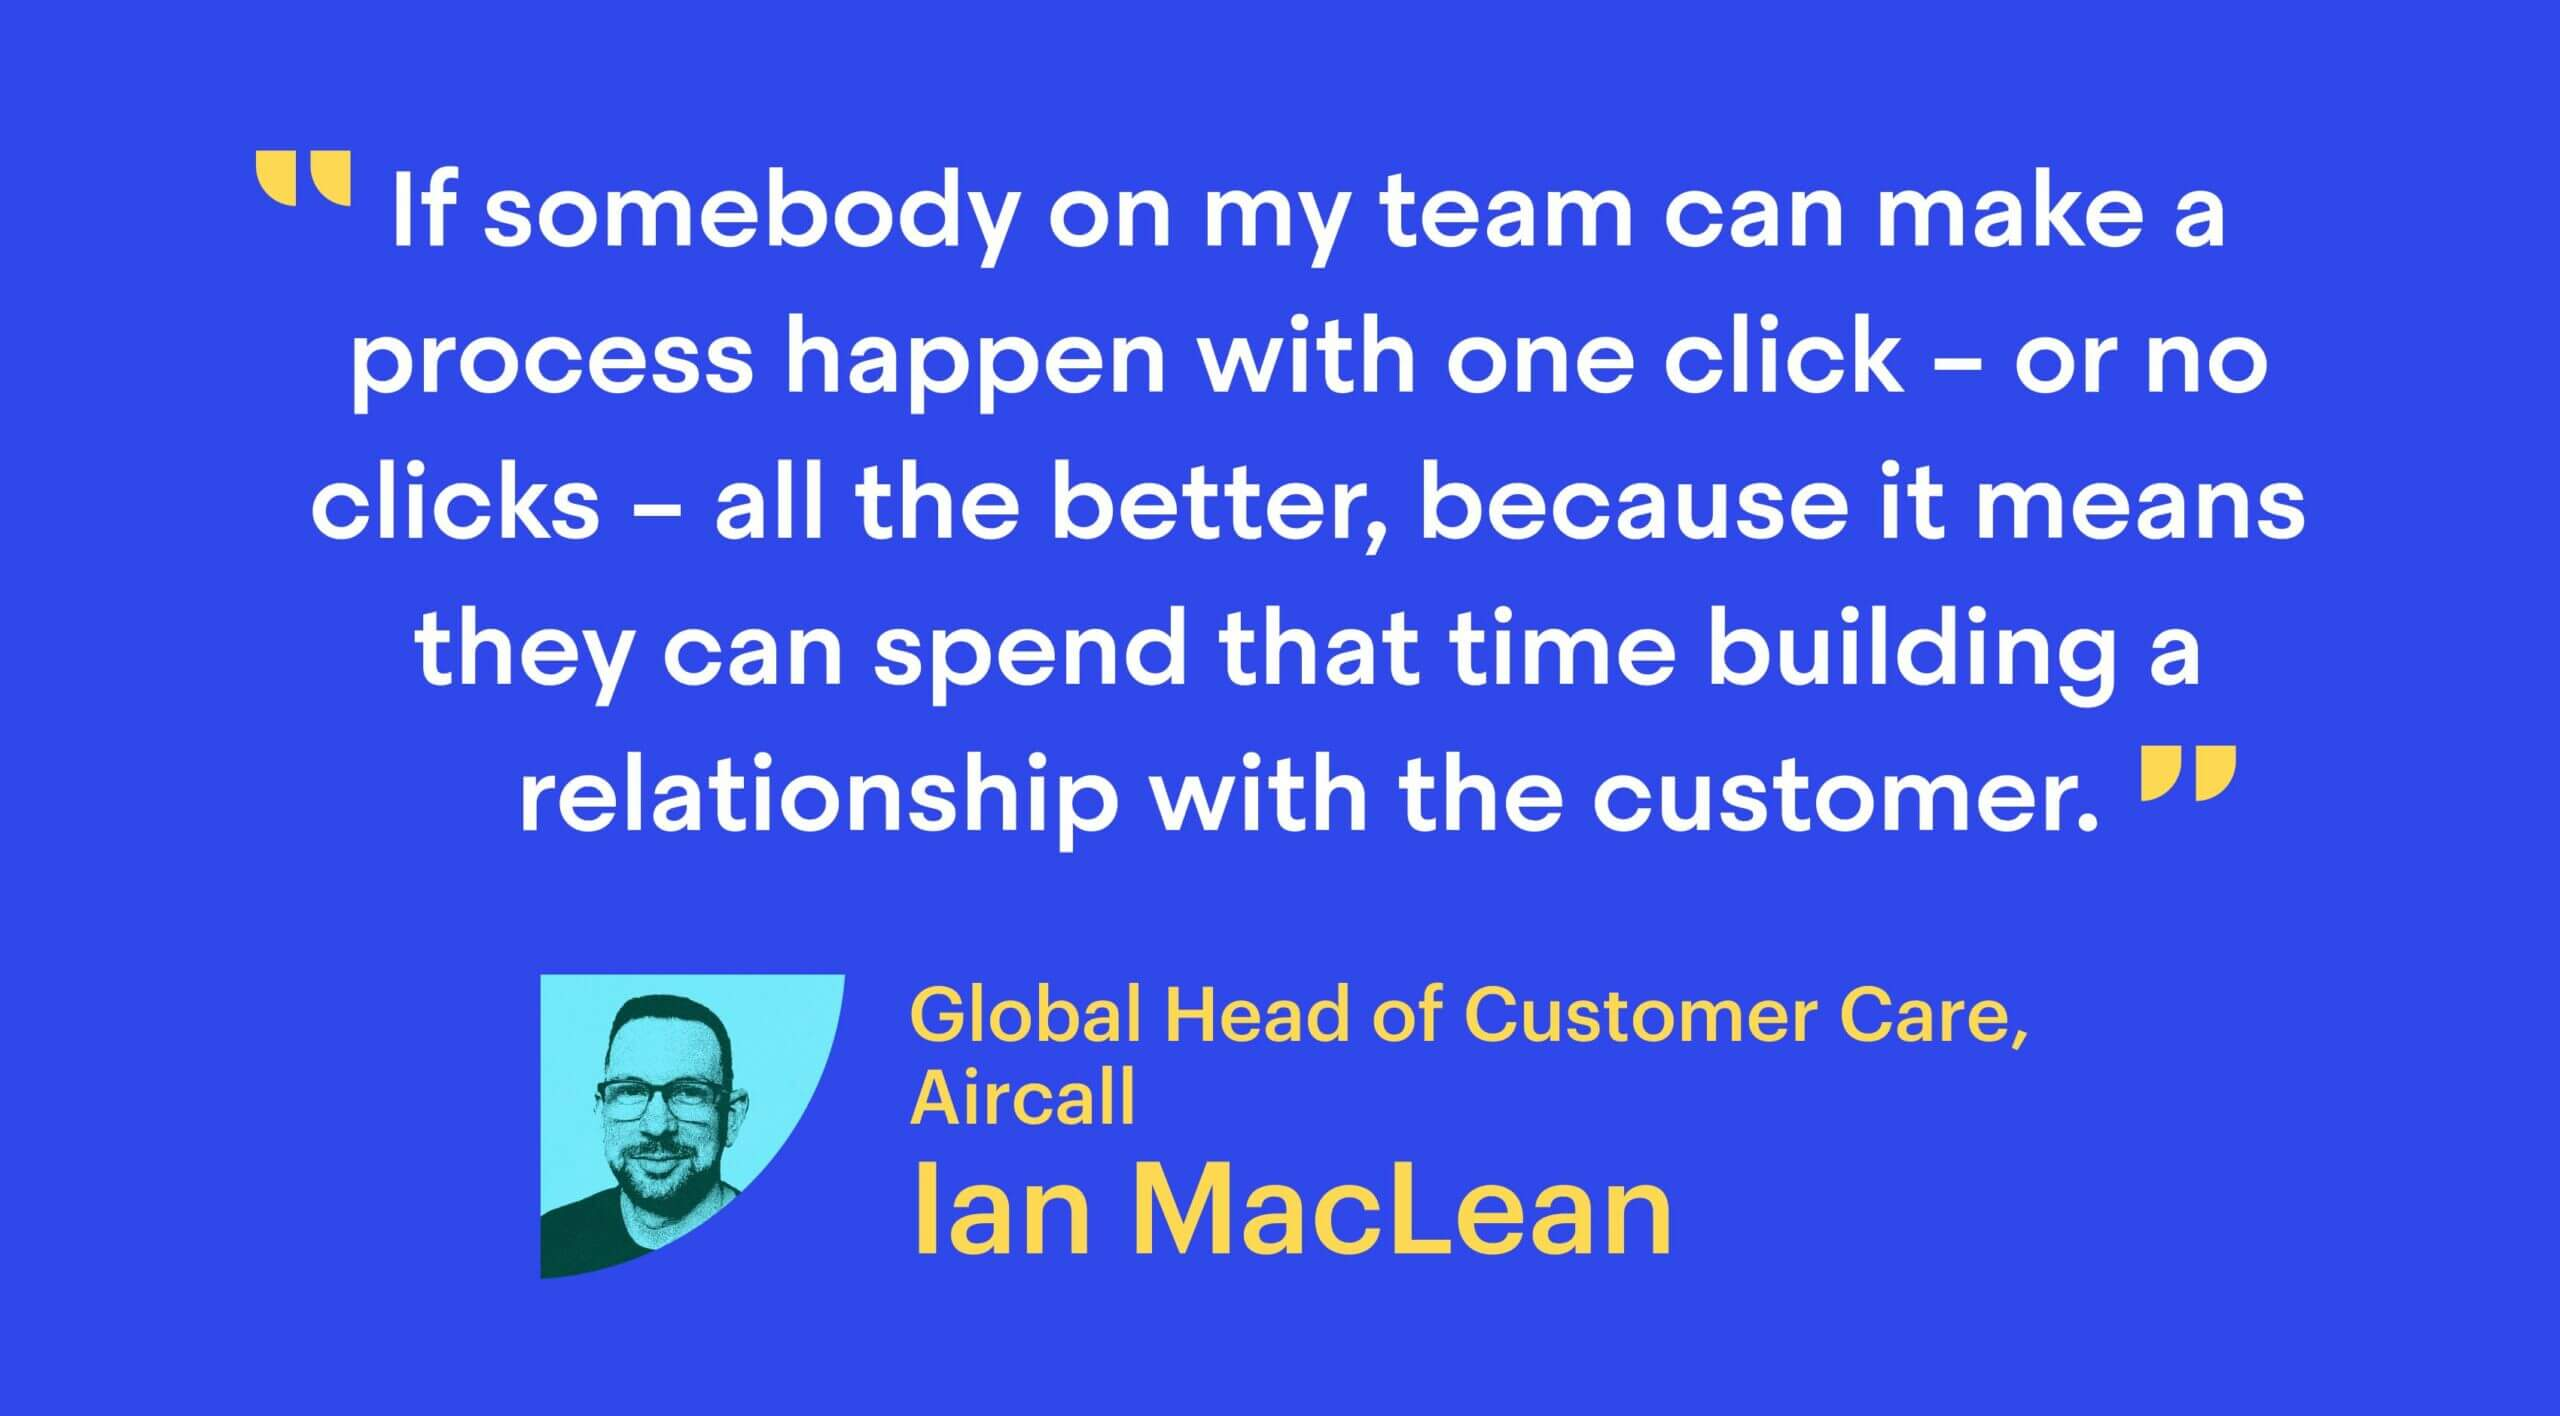 """""""If somebody on my team can make a process happen with one click – or no clicks – all the better, because it means they can spend that time building a relationship with the customer."""""""